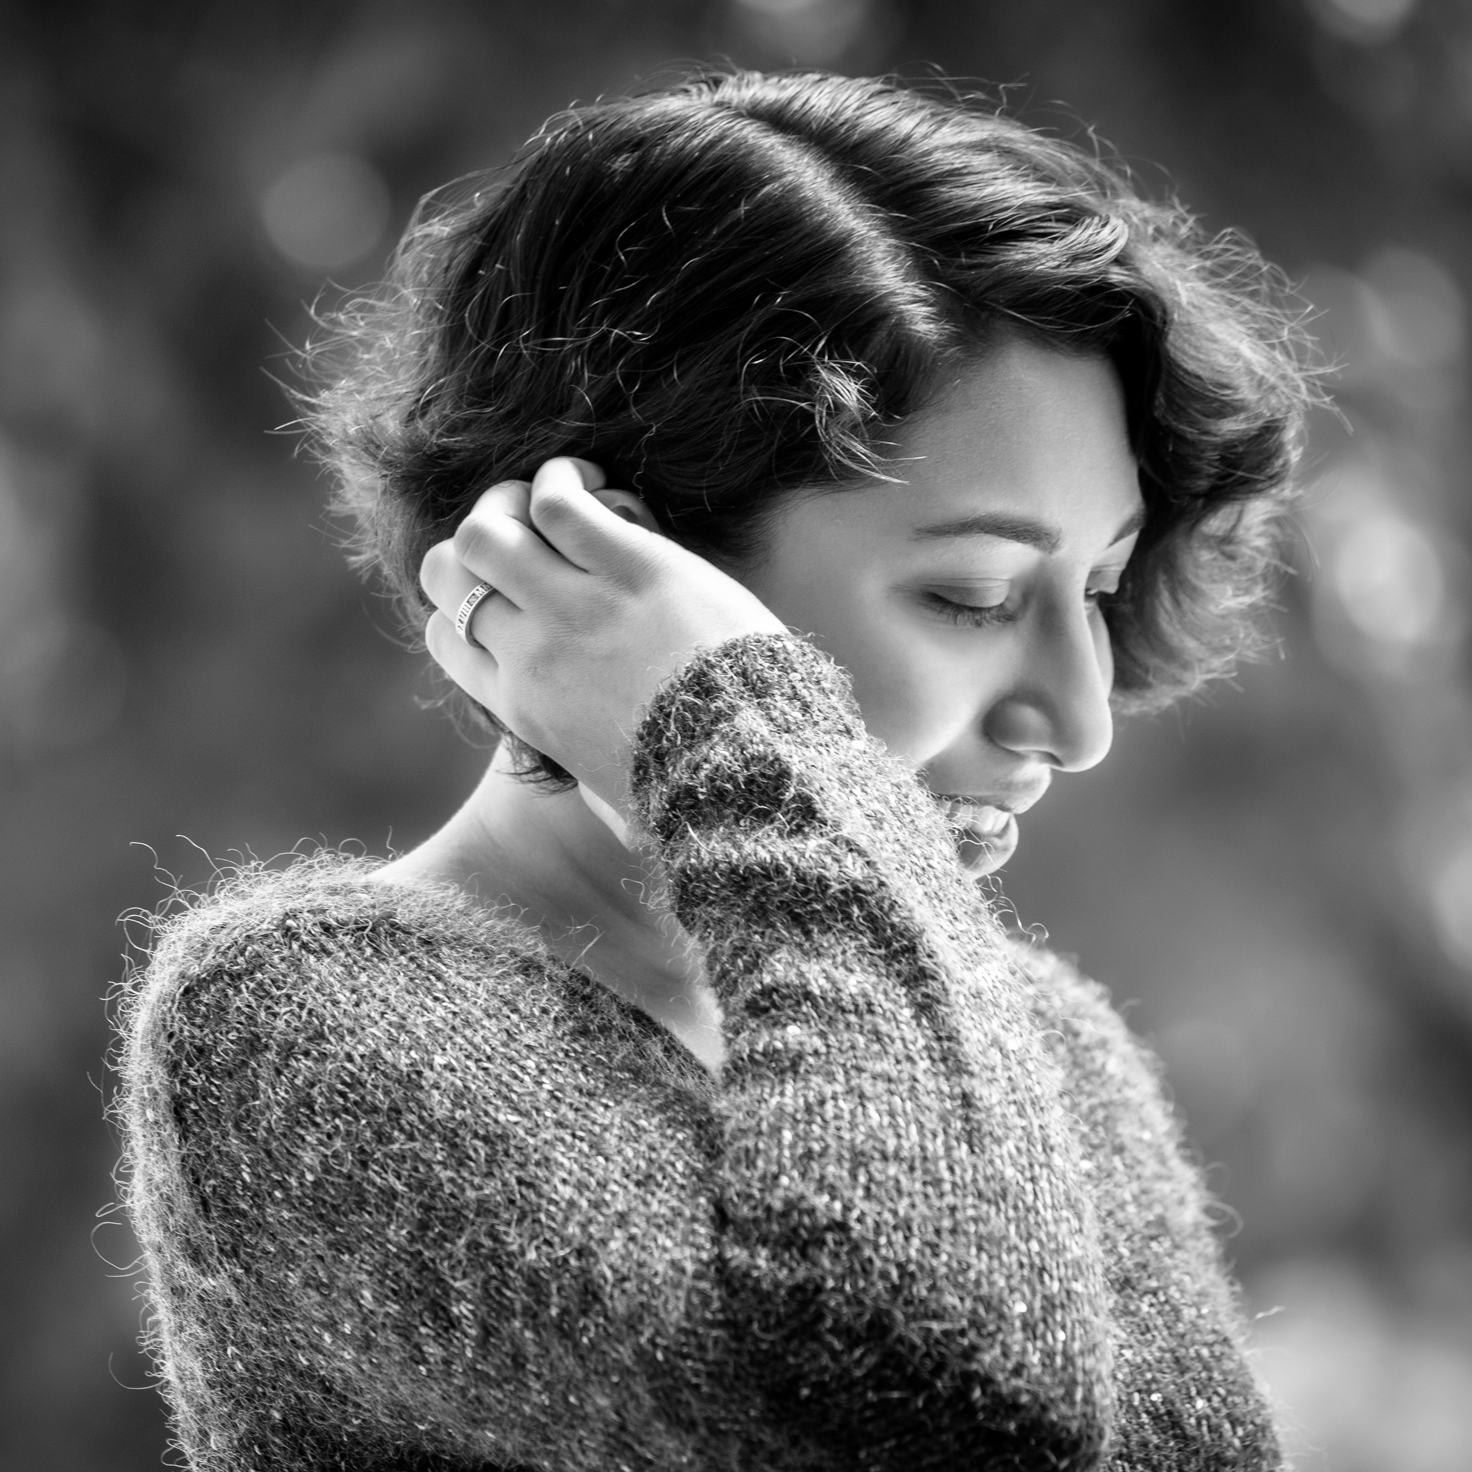 A black-&-white side shot of a young brown woman in a dark grey sweater. There's a ring on her middle finger & her hand is raised, curling her short hair behind her ear. She is smiling slightly & looking downwards.